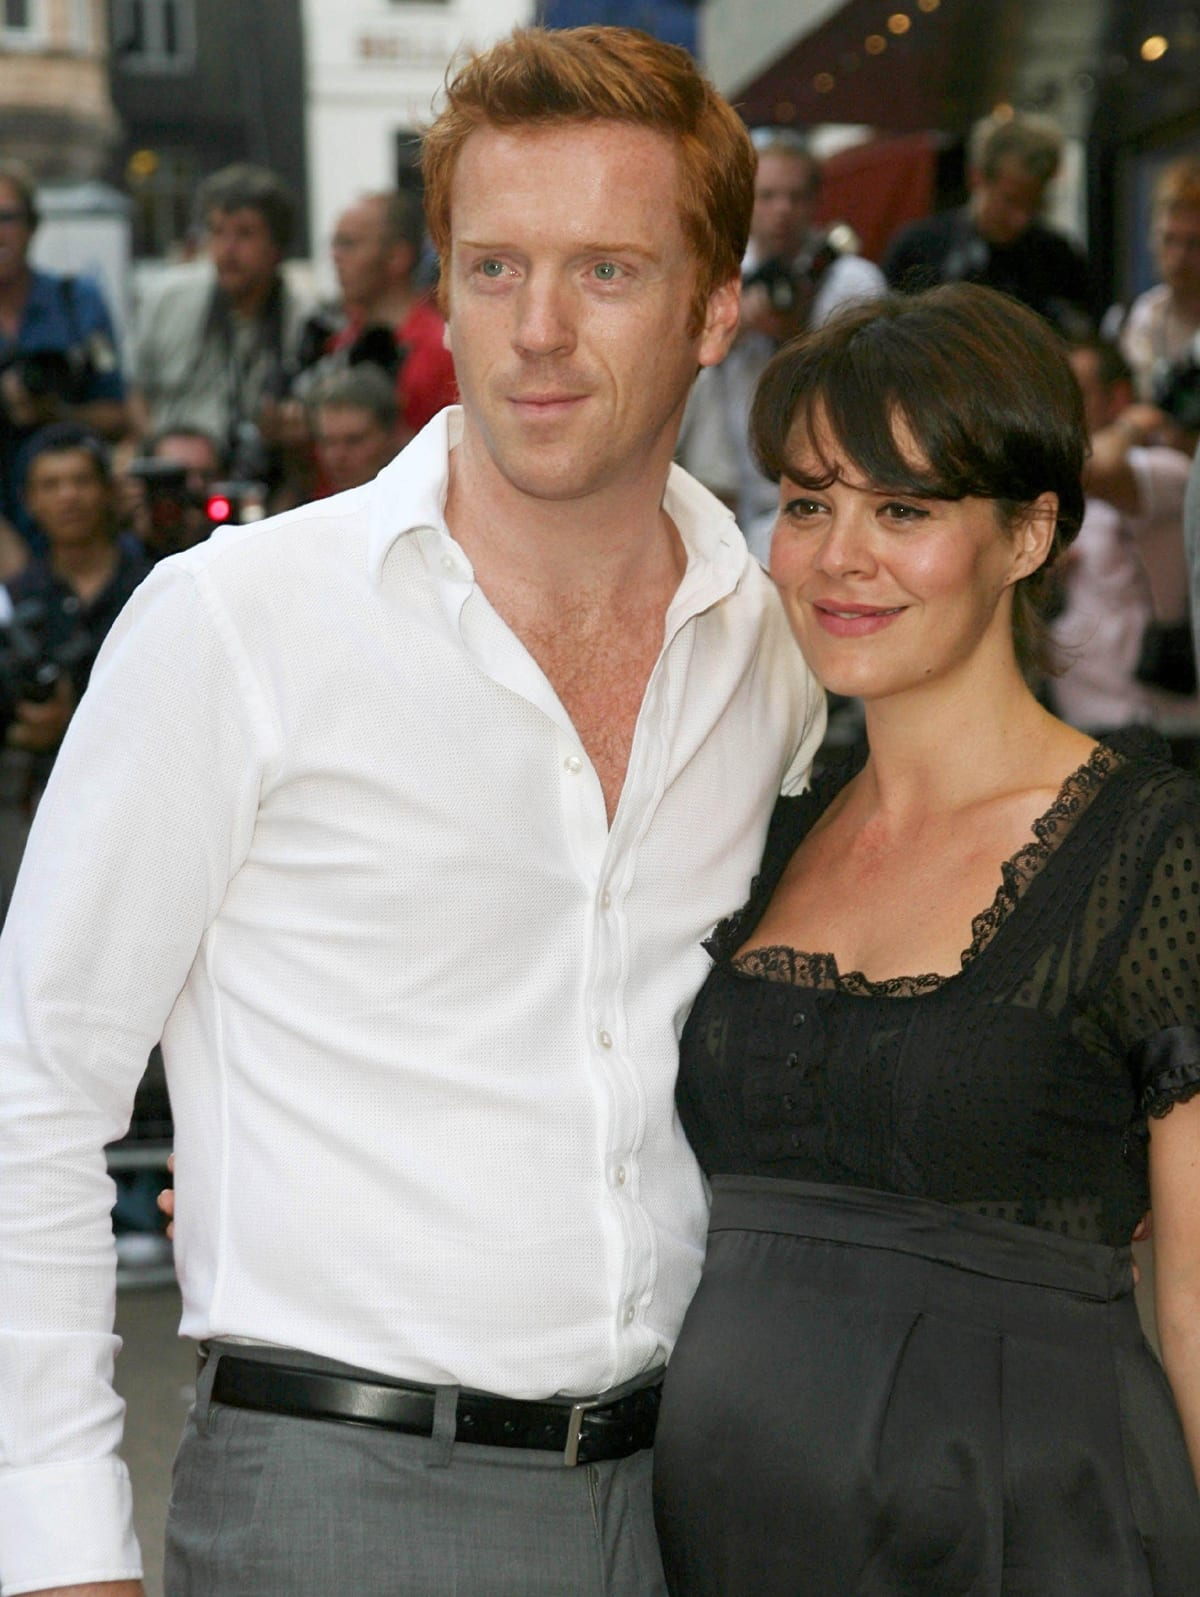 Actor Damian Lewis and his pregnant girlfriend Helen McCrory